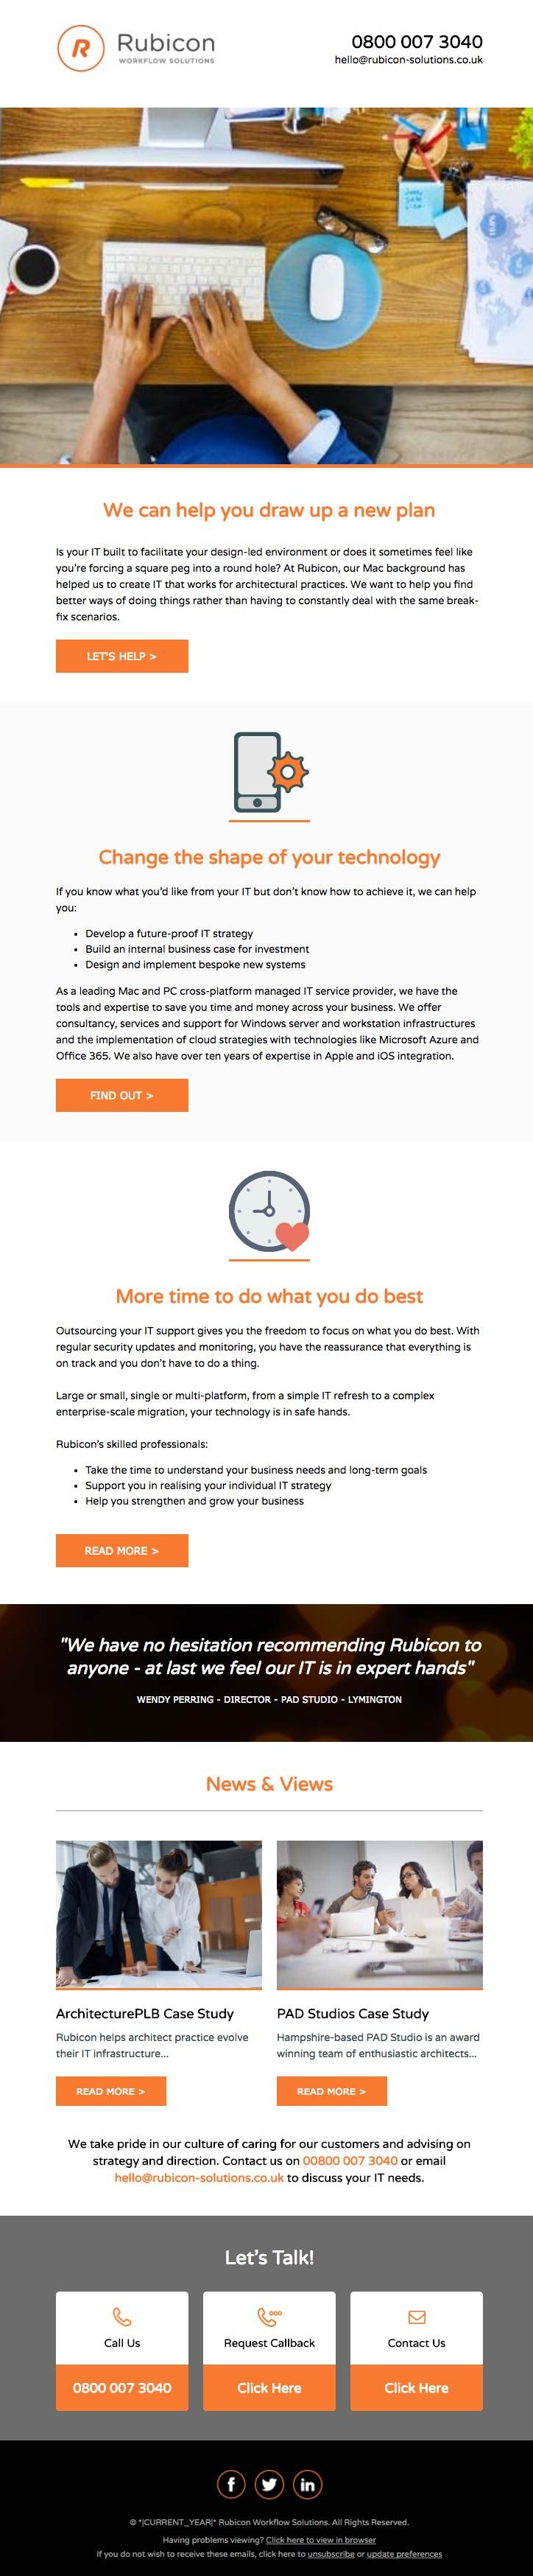 Lovely 10 Steps Writing Resume Small 16 Team Bracket Template Regular 1st Time Resume Templates 2 Page Resumes Ok Old 2003 Word Templates Soft2014 2015 Academic Calendar Template 183 Best Images About MailNinja HTML Email Template Designs On ..